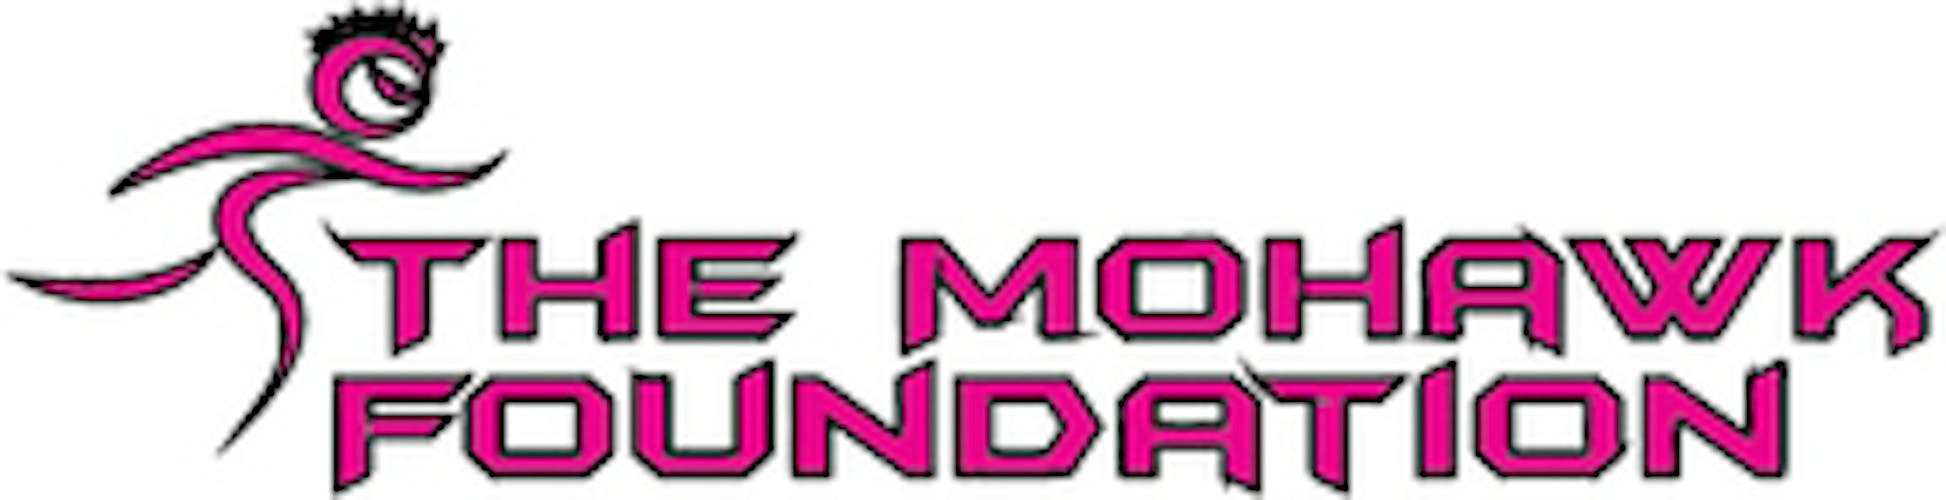 The Mohawk Foundation